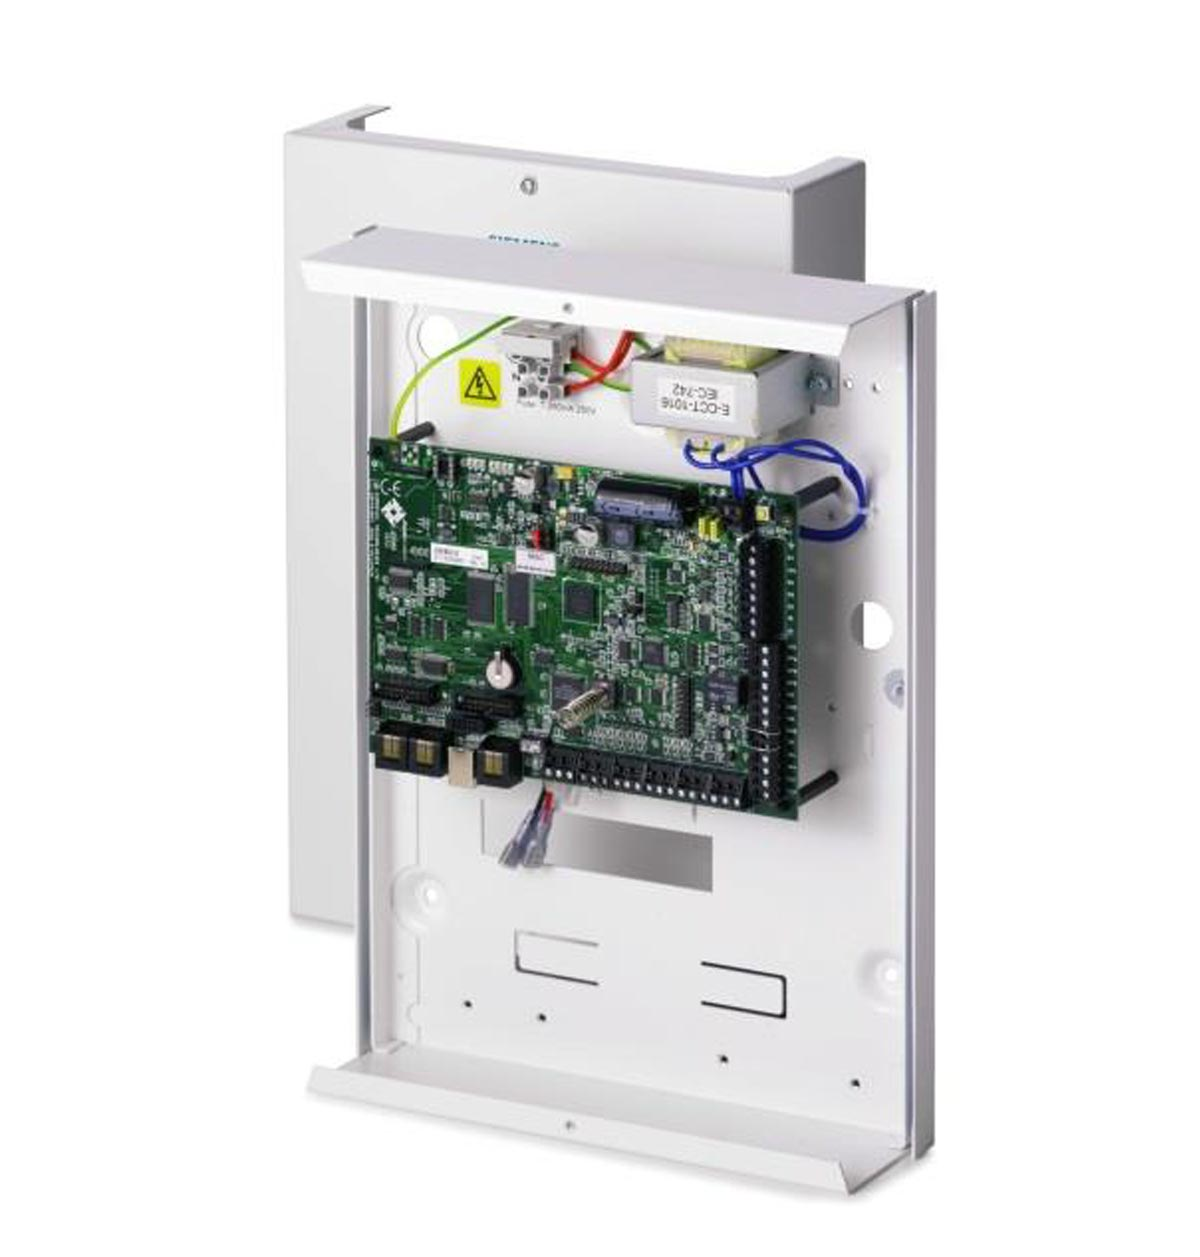 alarm panel security panel security alarm panel intrusion alarm panel alarm system home alarm panel office alarm panel